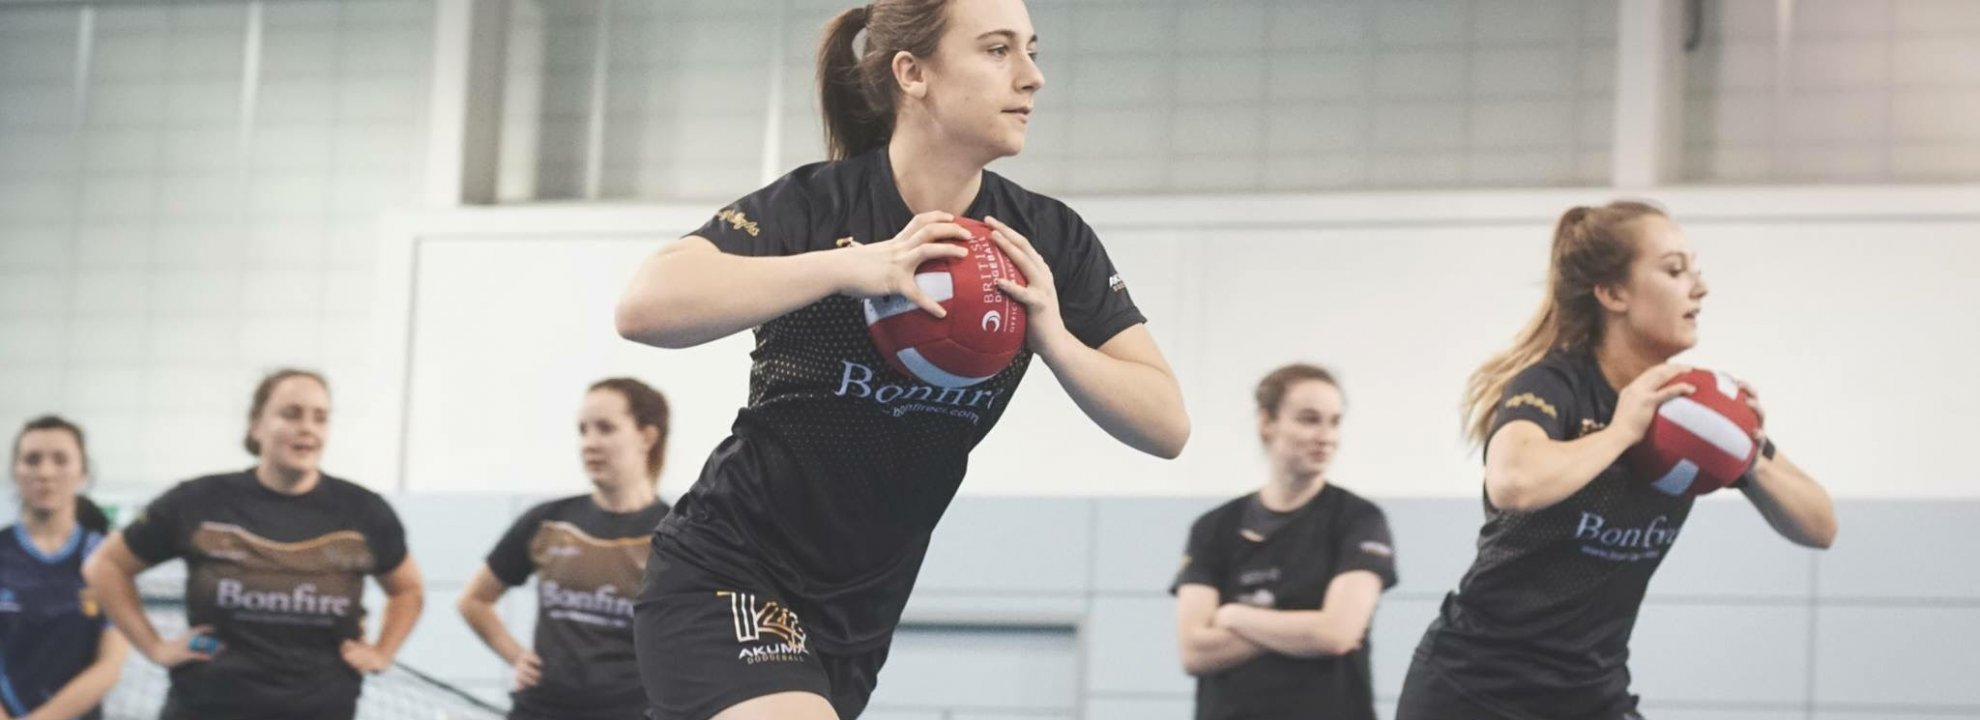 Introduction to Dodgeball Online Course Banner